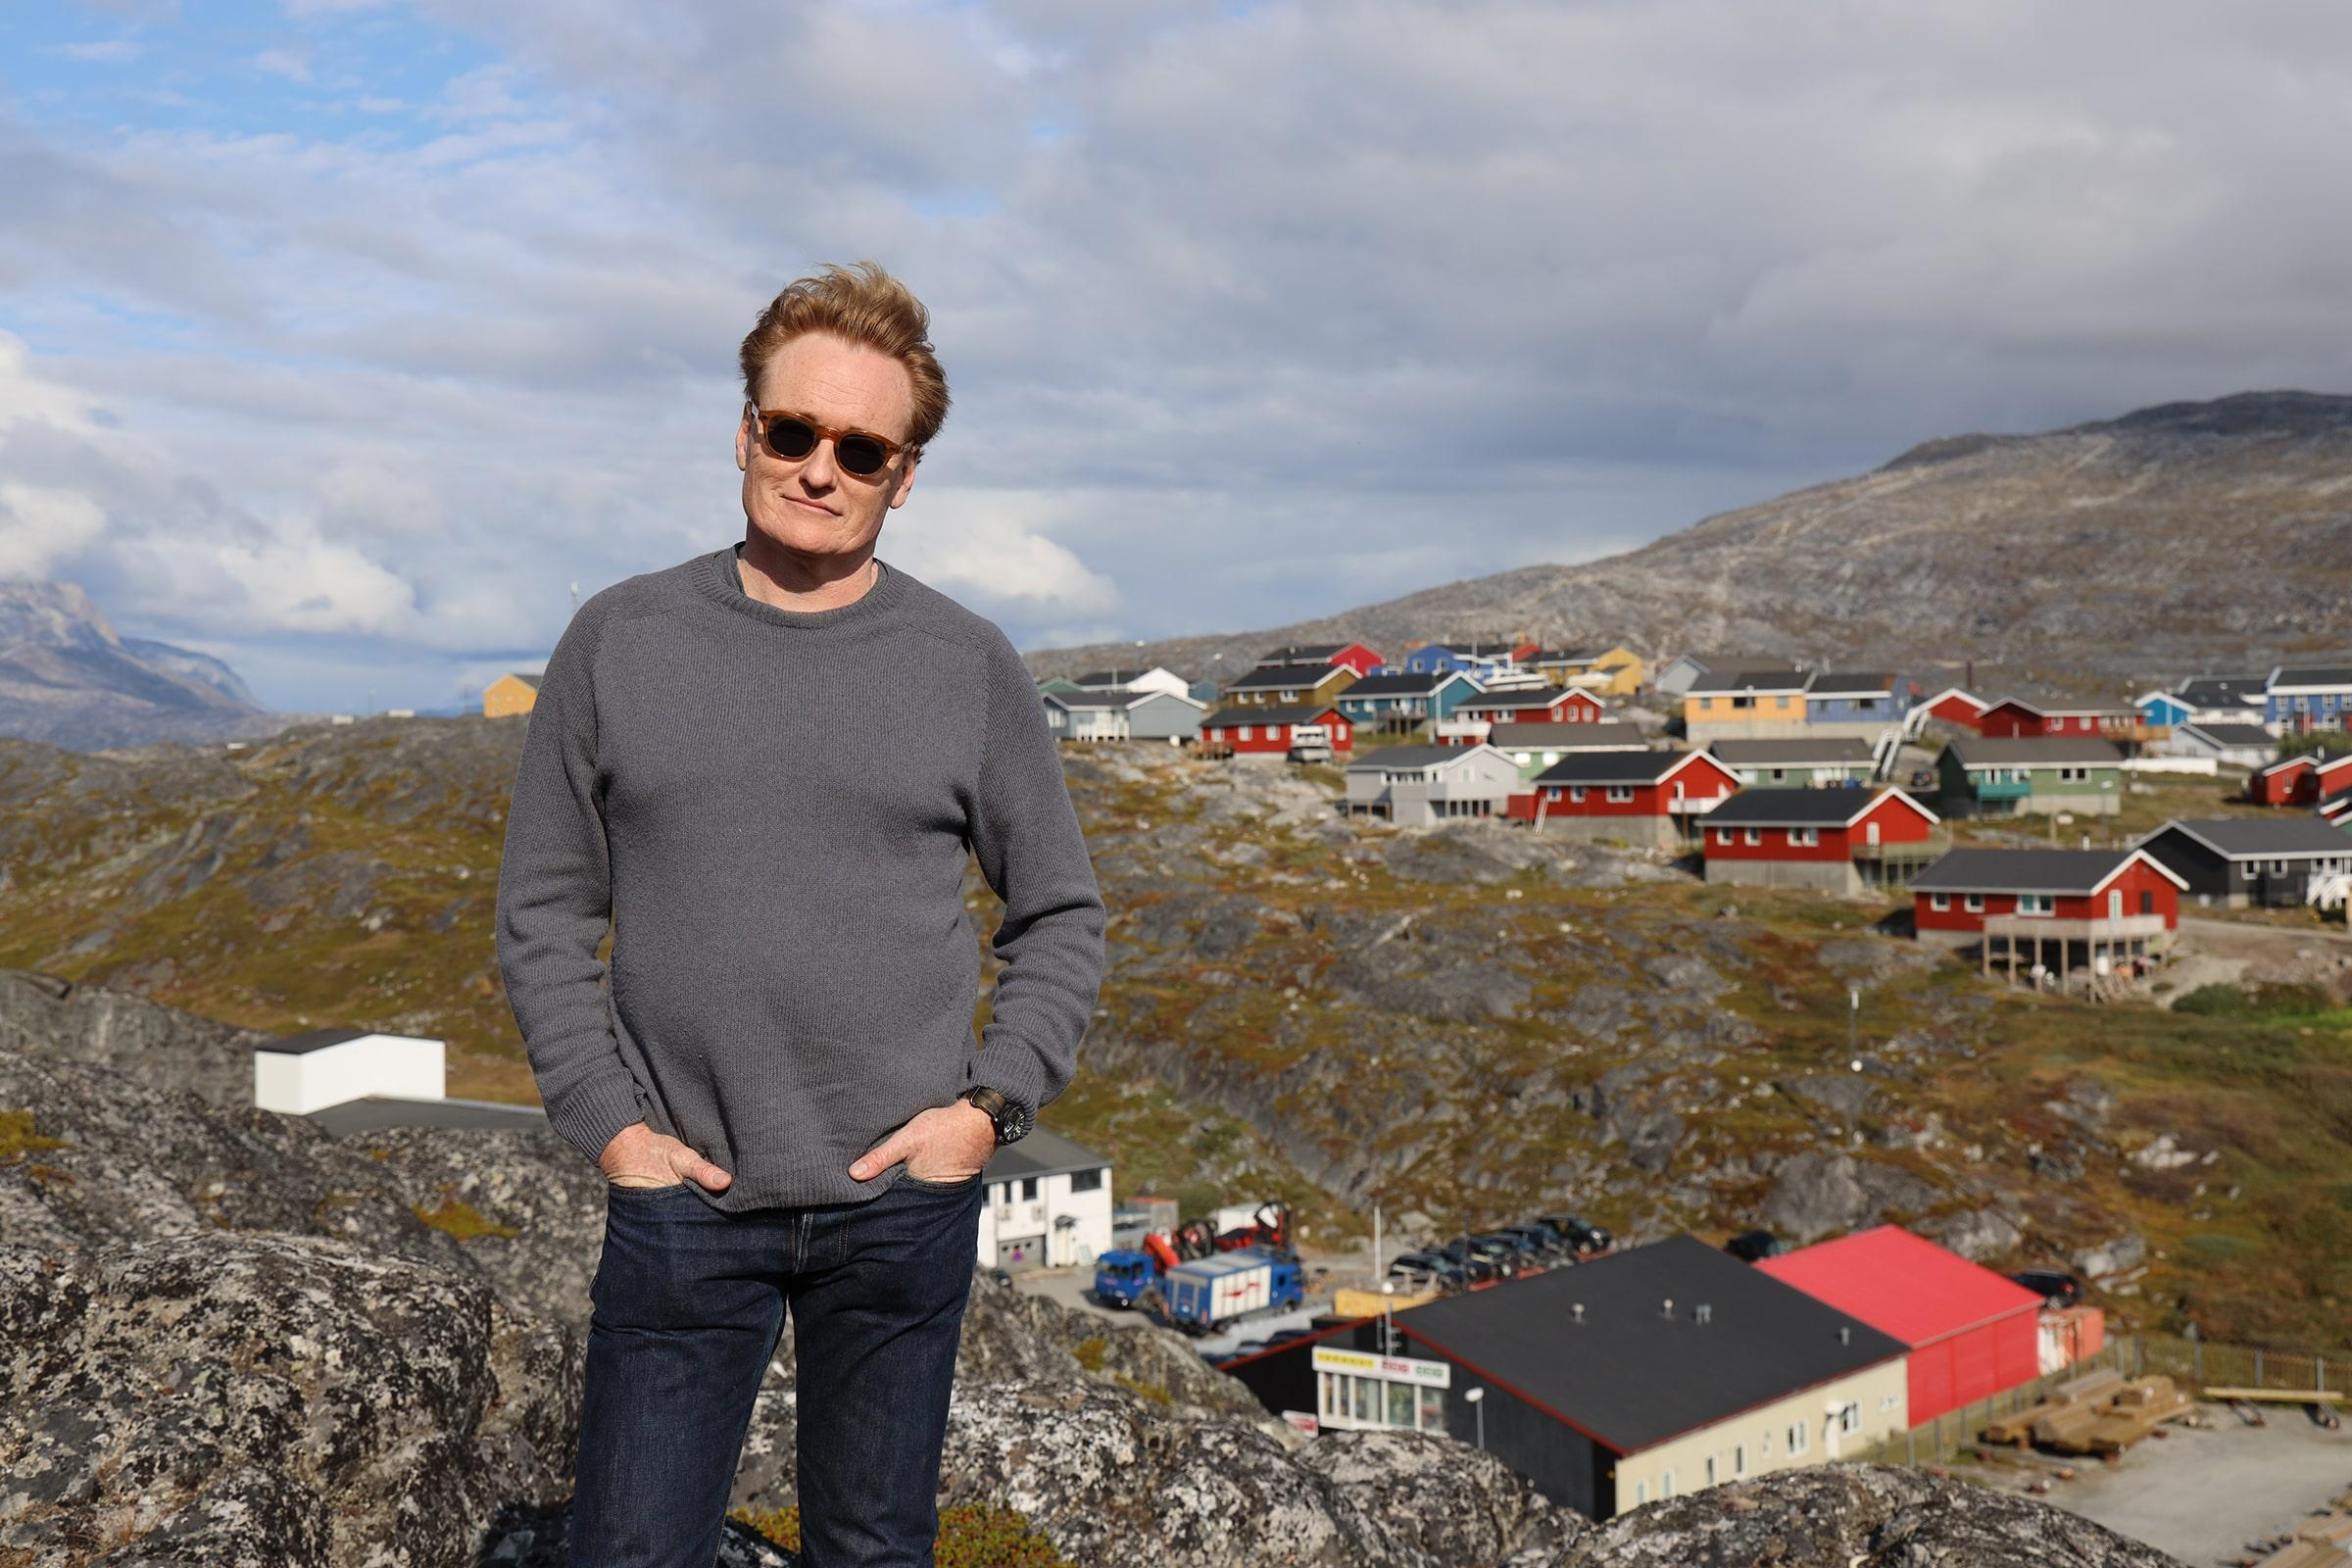 Conan O'Brien and panorama of Nuuk. Photo by Team Coco